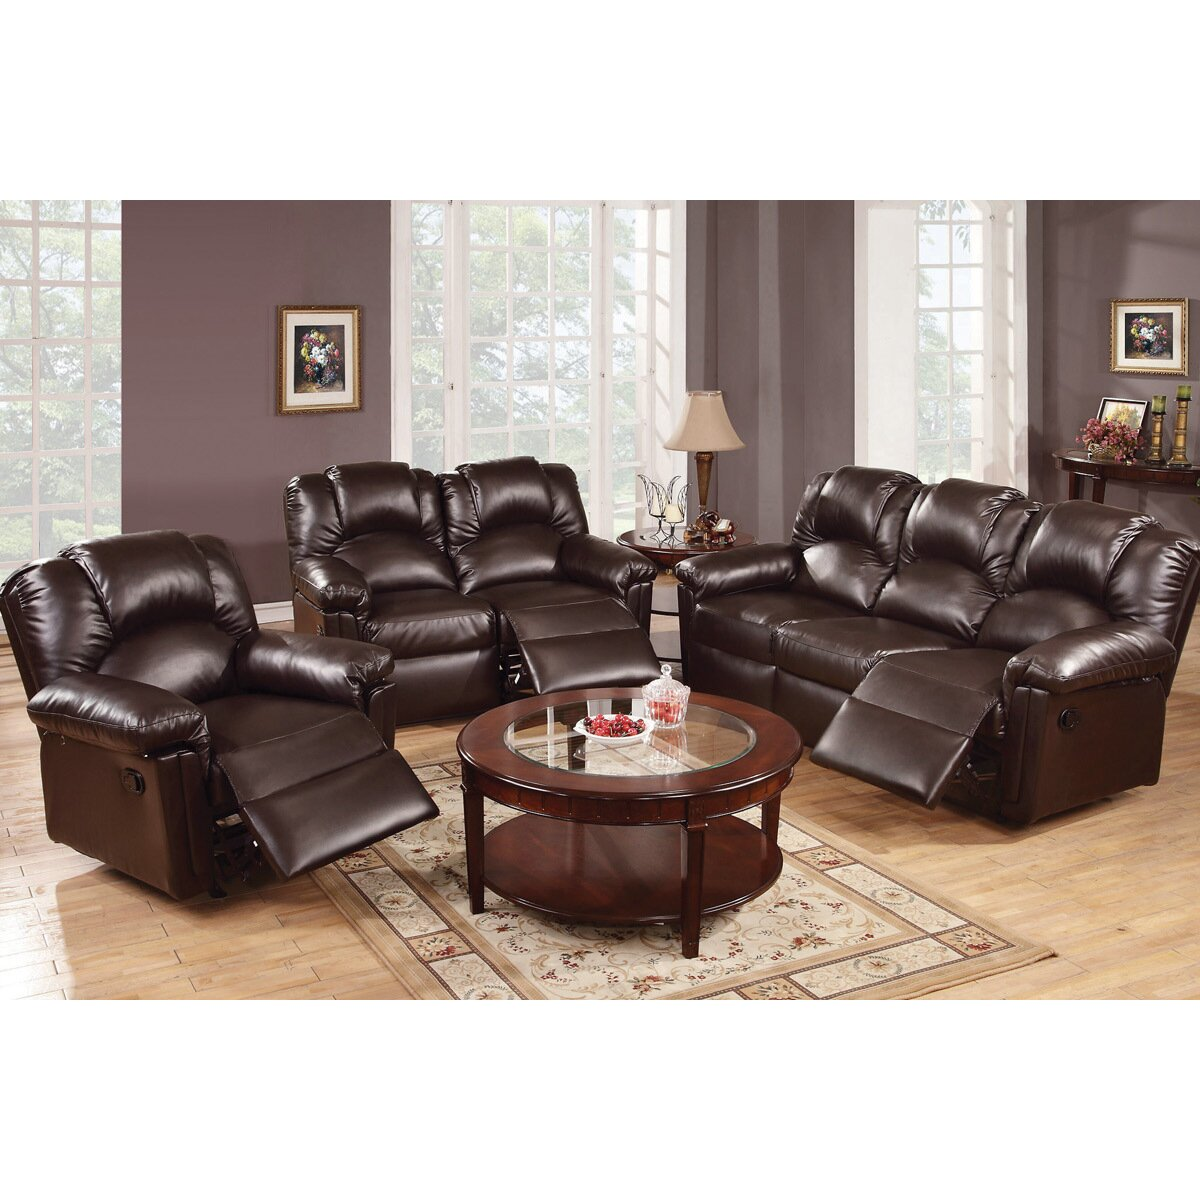 A j homes studio andy motion 3 piece living room set wayfair for 6 piece living room set